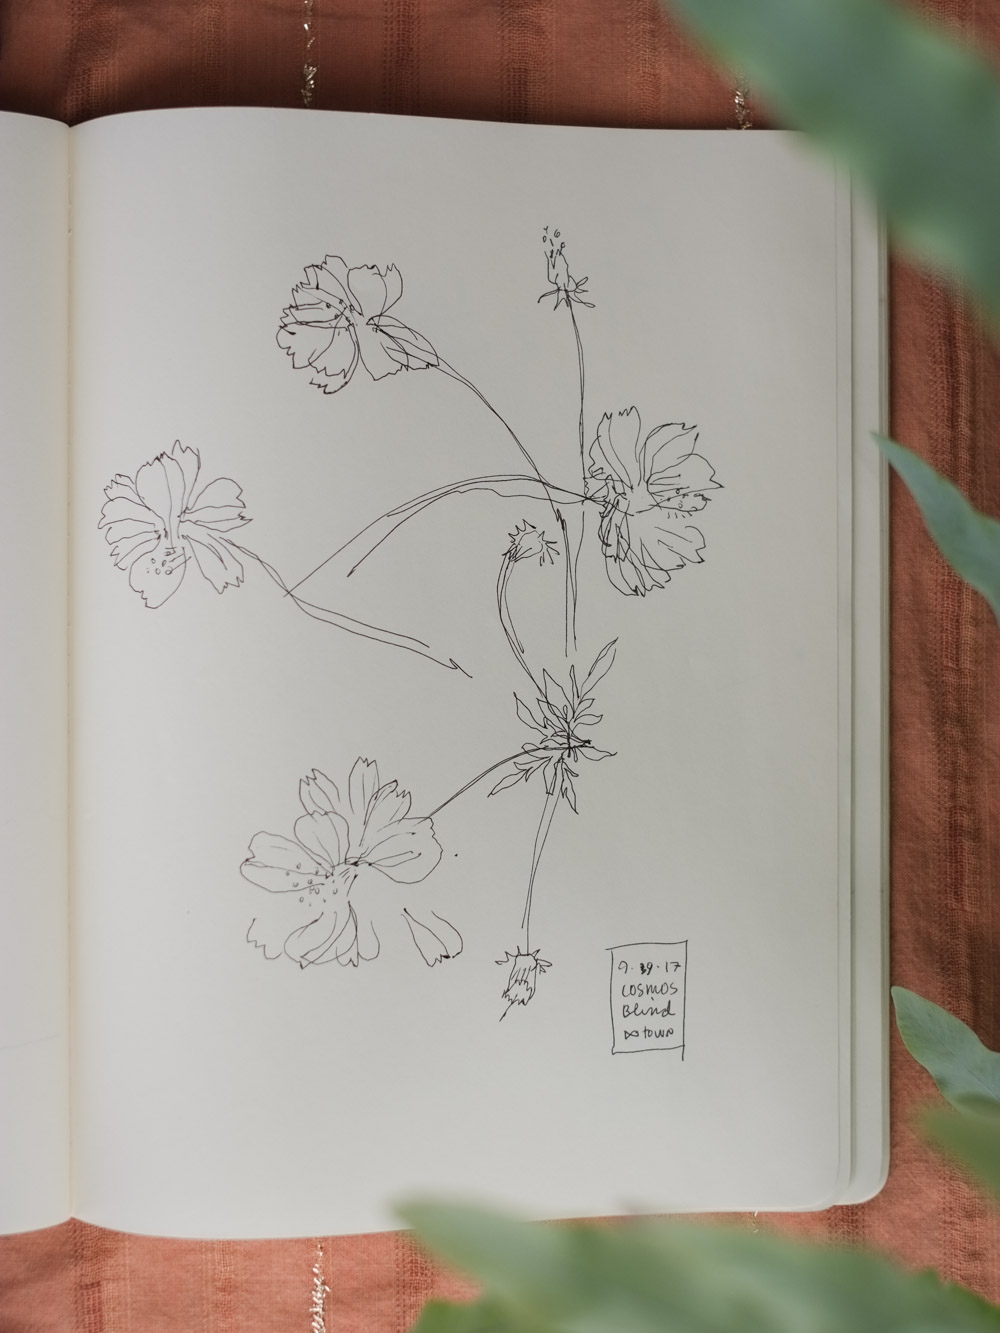 Erin_Ellis_daily_botanical_blind_drawings_sept_2017.jpg-12.jpg